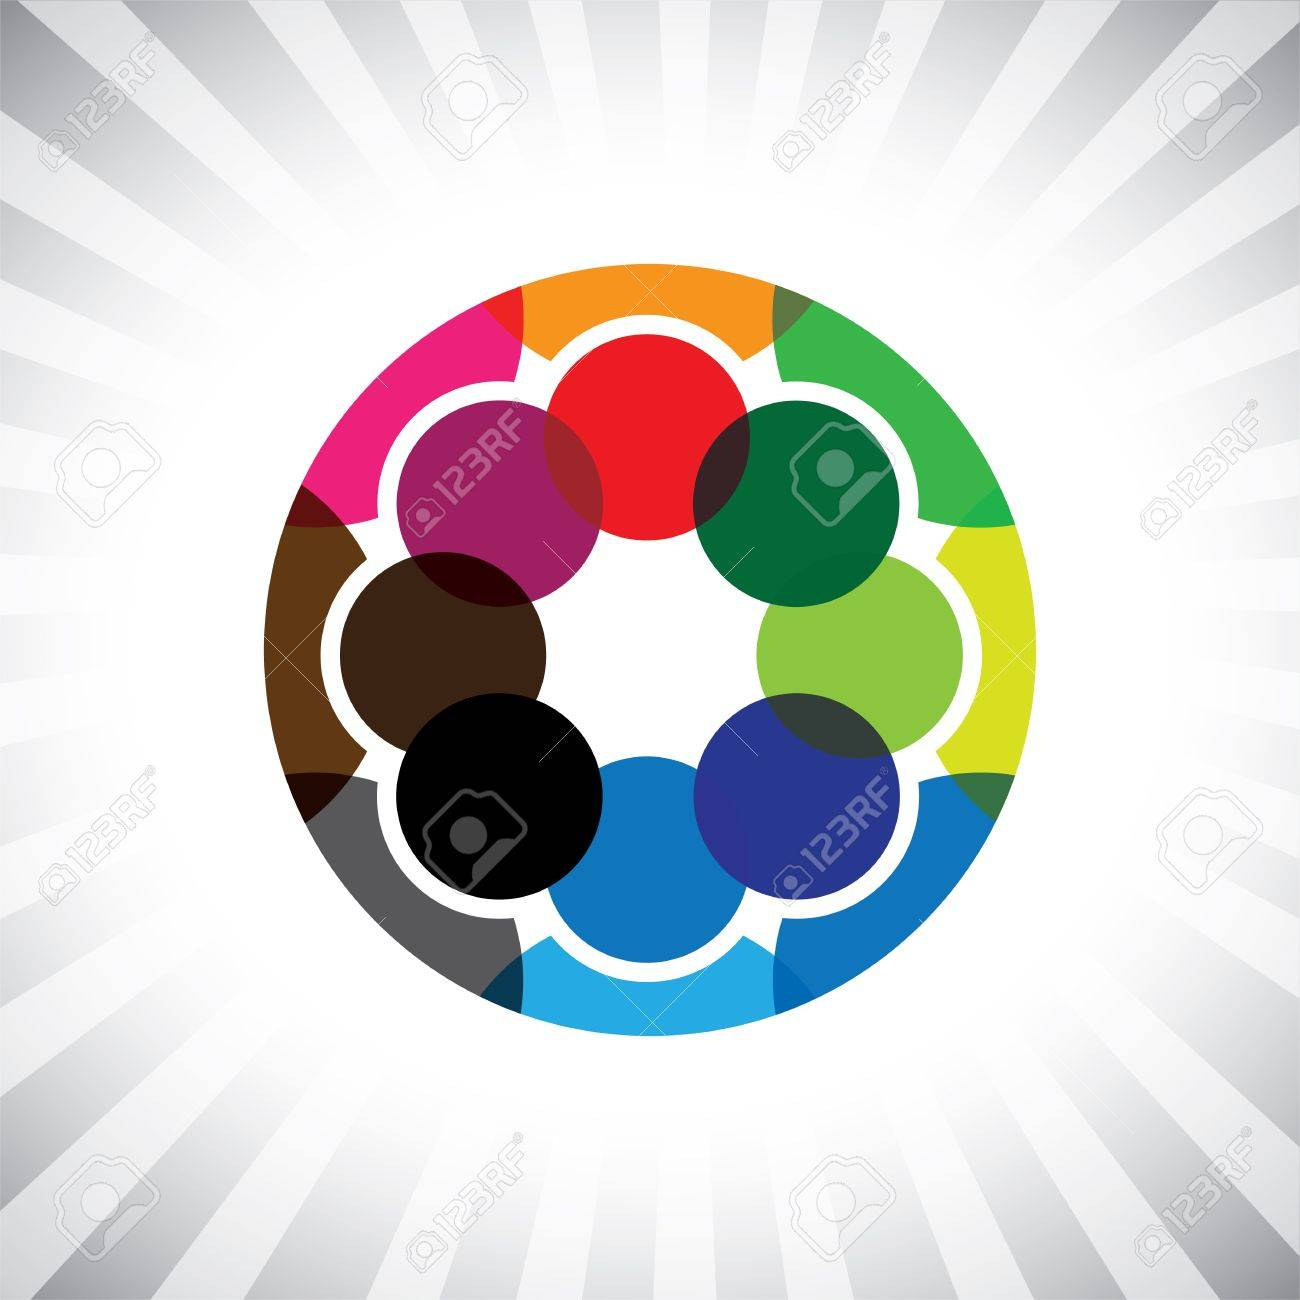 close circle of buddies, pals & friends get-together- graphic. This illustration can also represent children playing,kids having fun,employee meeting,workers unity & diversity, people community Stock Vector - 20787571